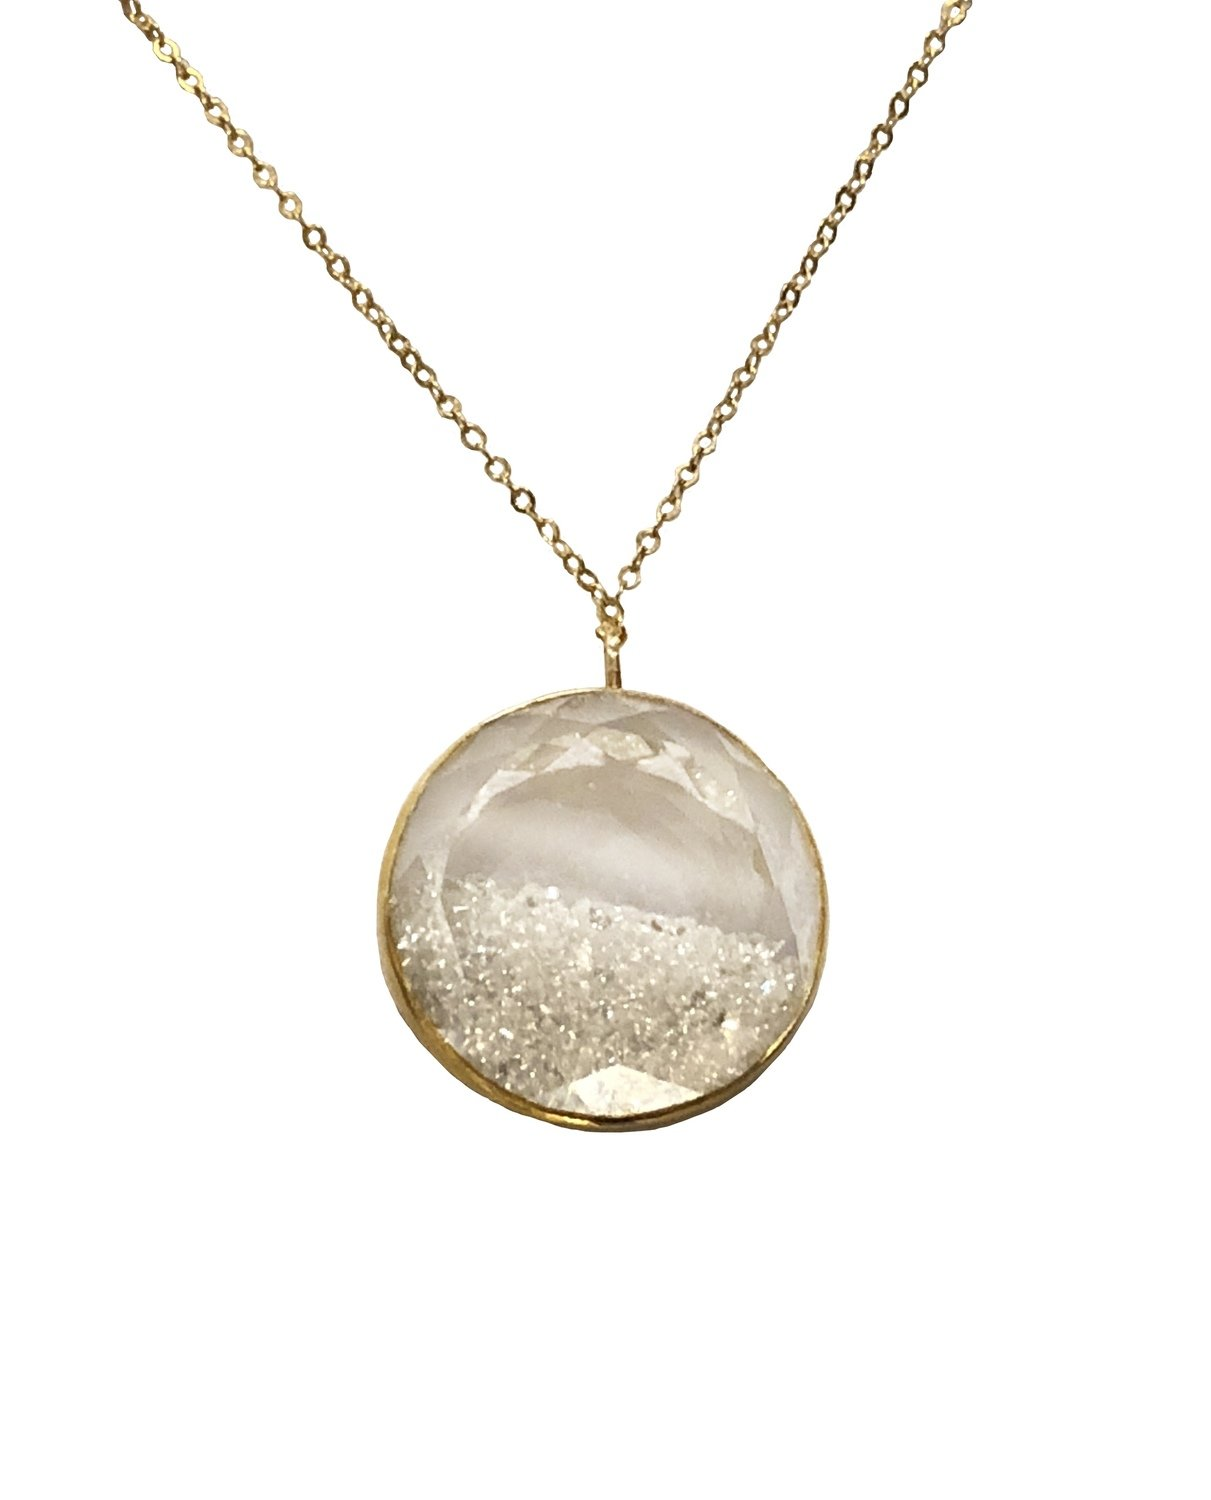 22k Gold Shake Necklace with White Sapphire Shake